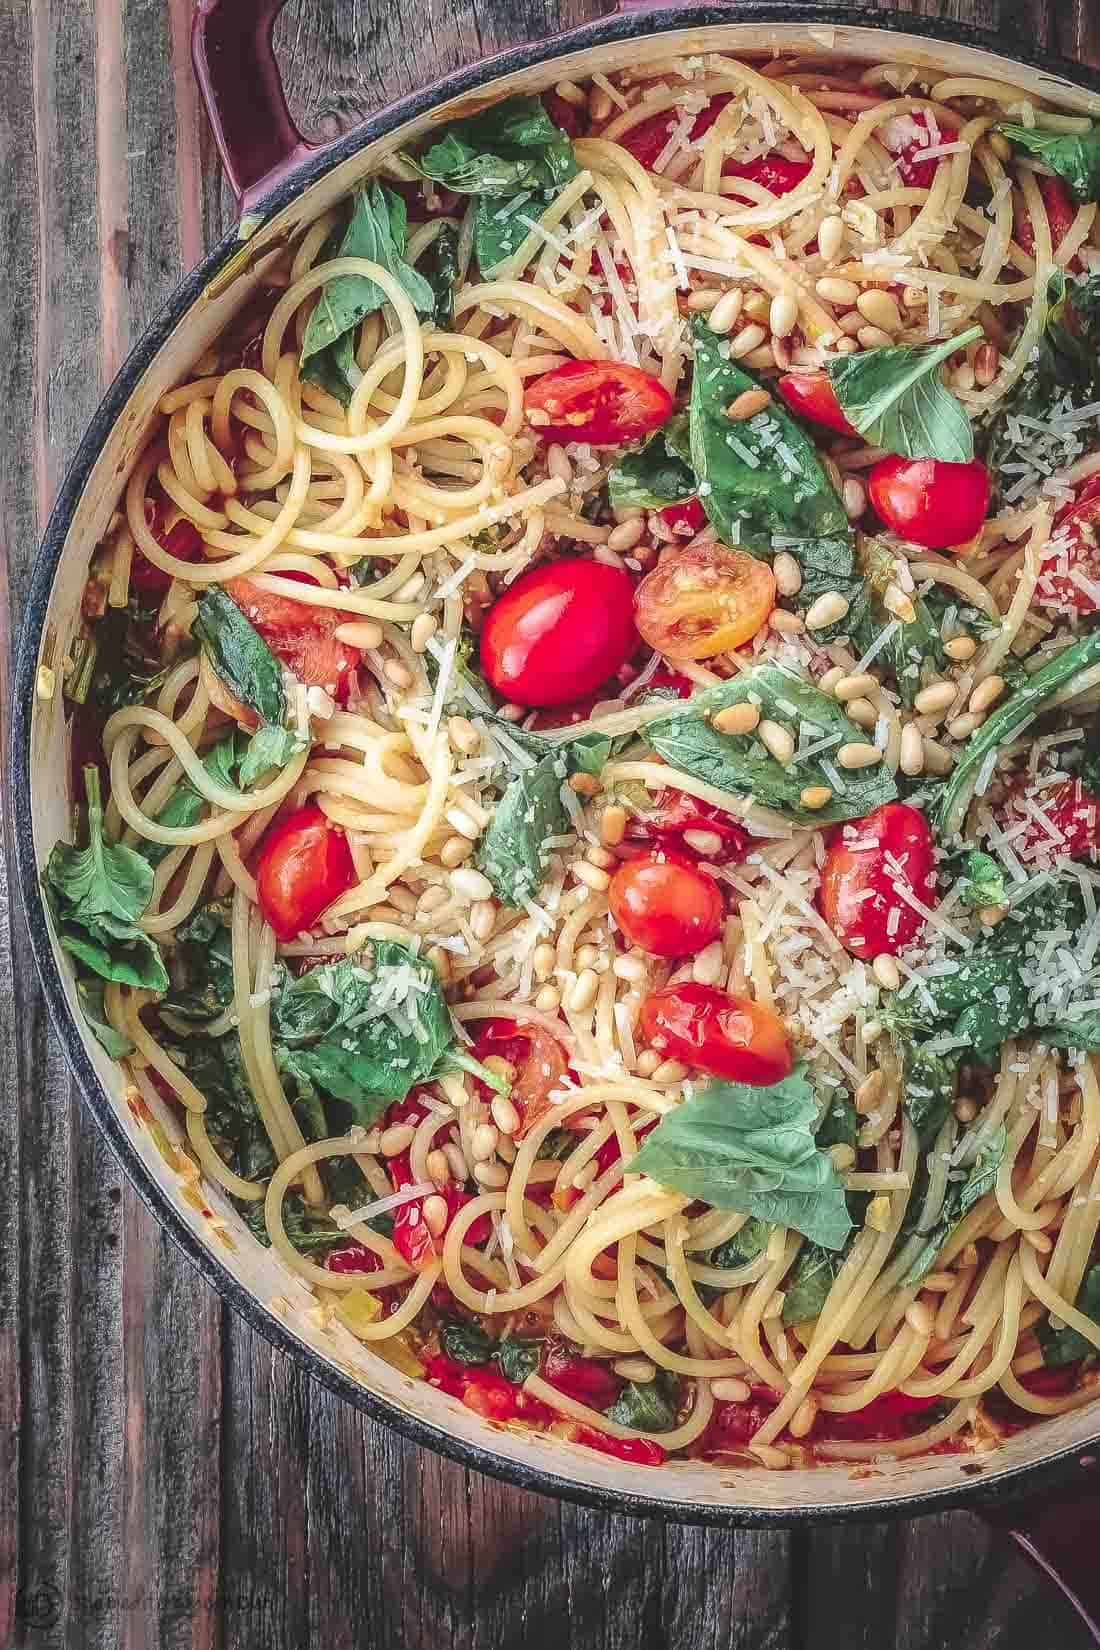 Spaghetti with tomatoes, basil, pine nuts and Parmesan in a large pot